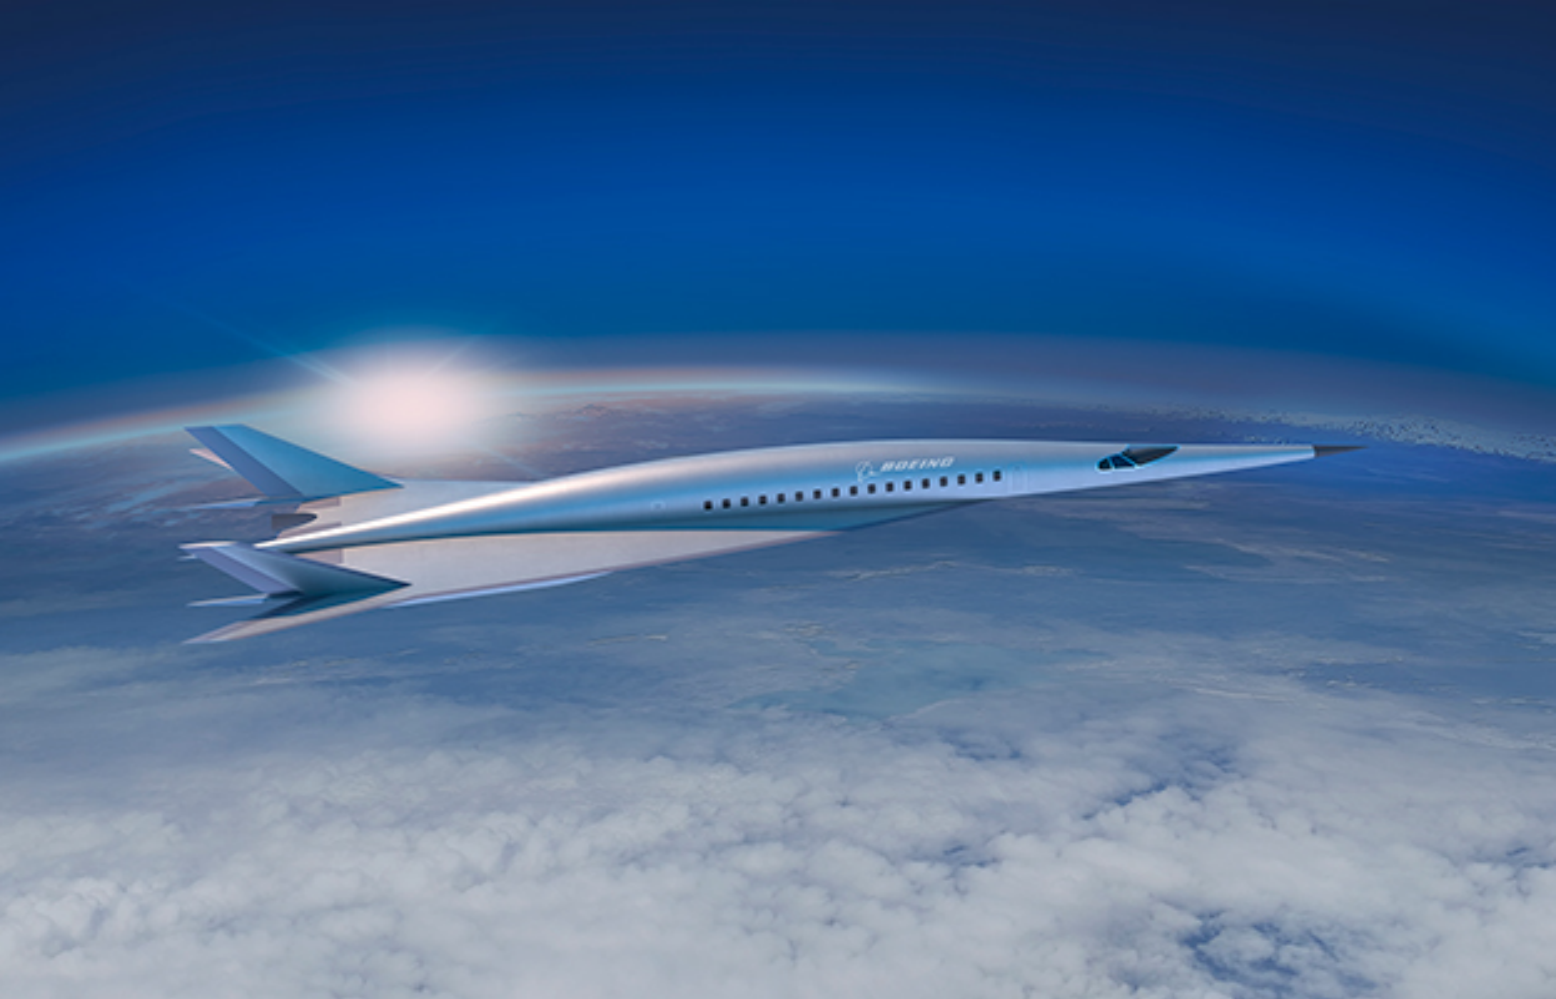 Boeing unveils hypersonic plane concept that could fly passengers across the Atlantic Ocean in two hours.